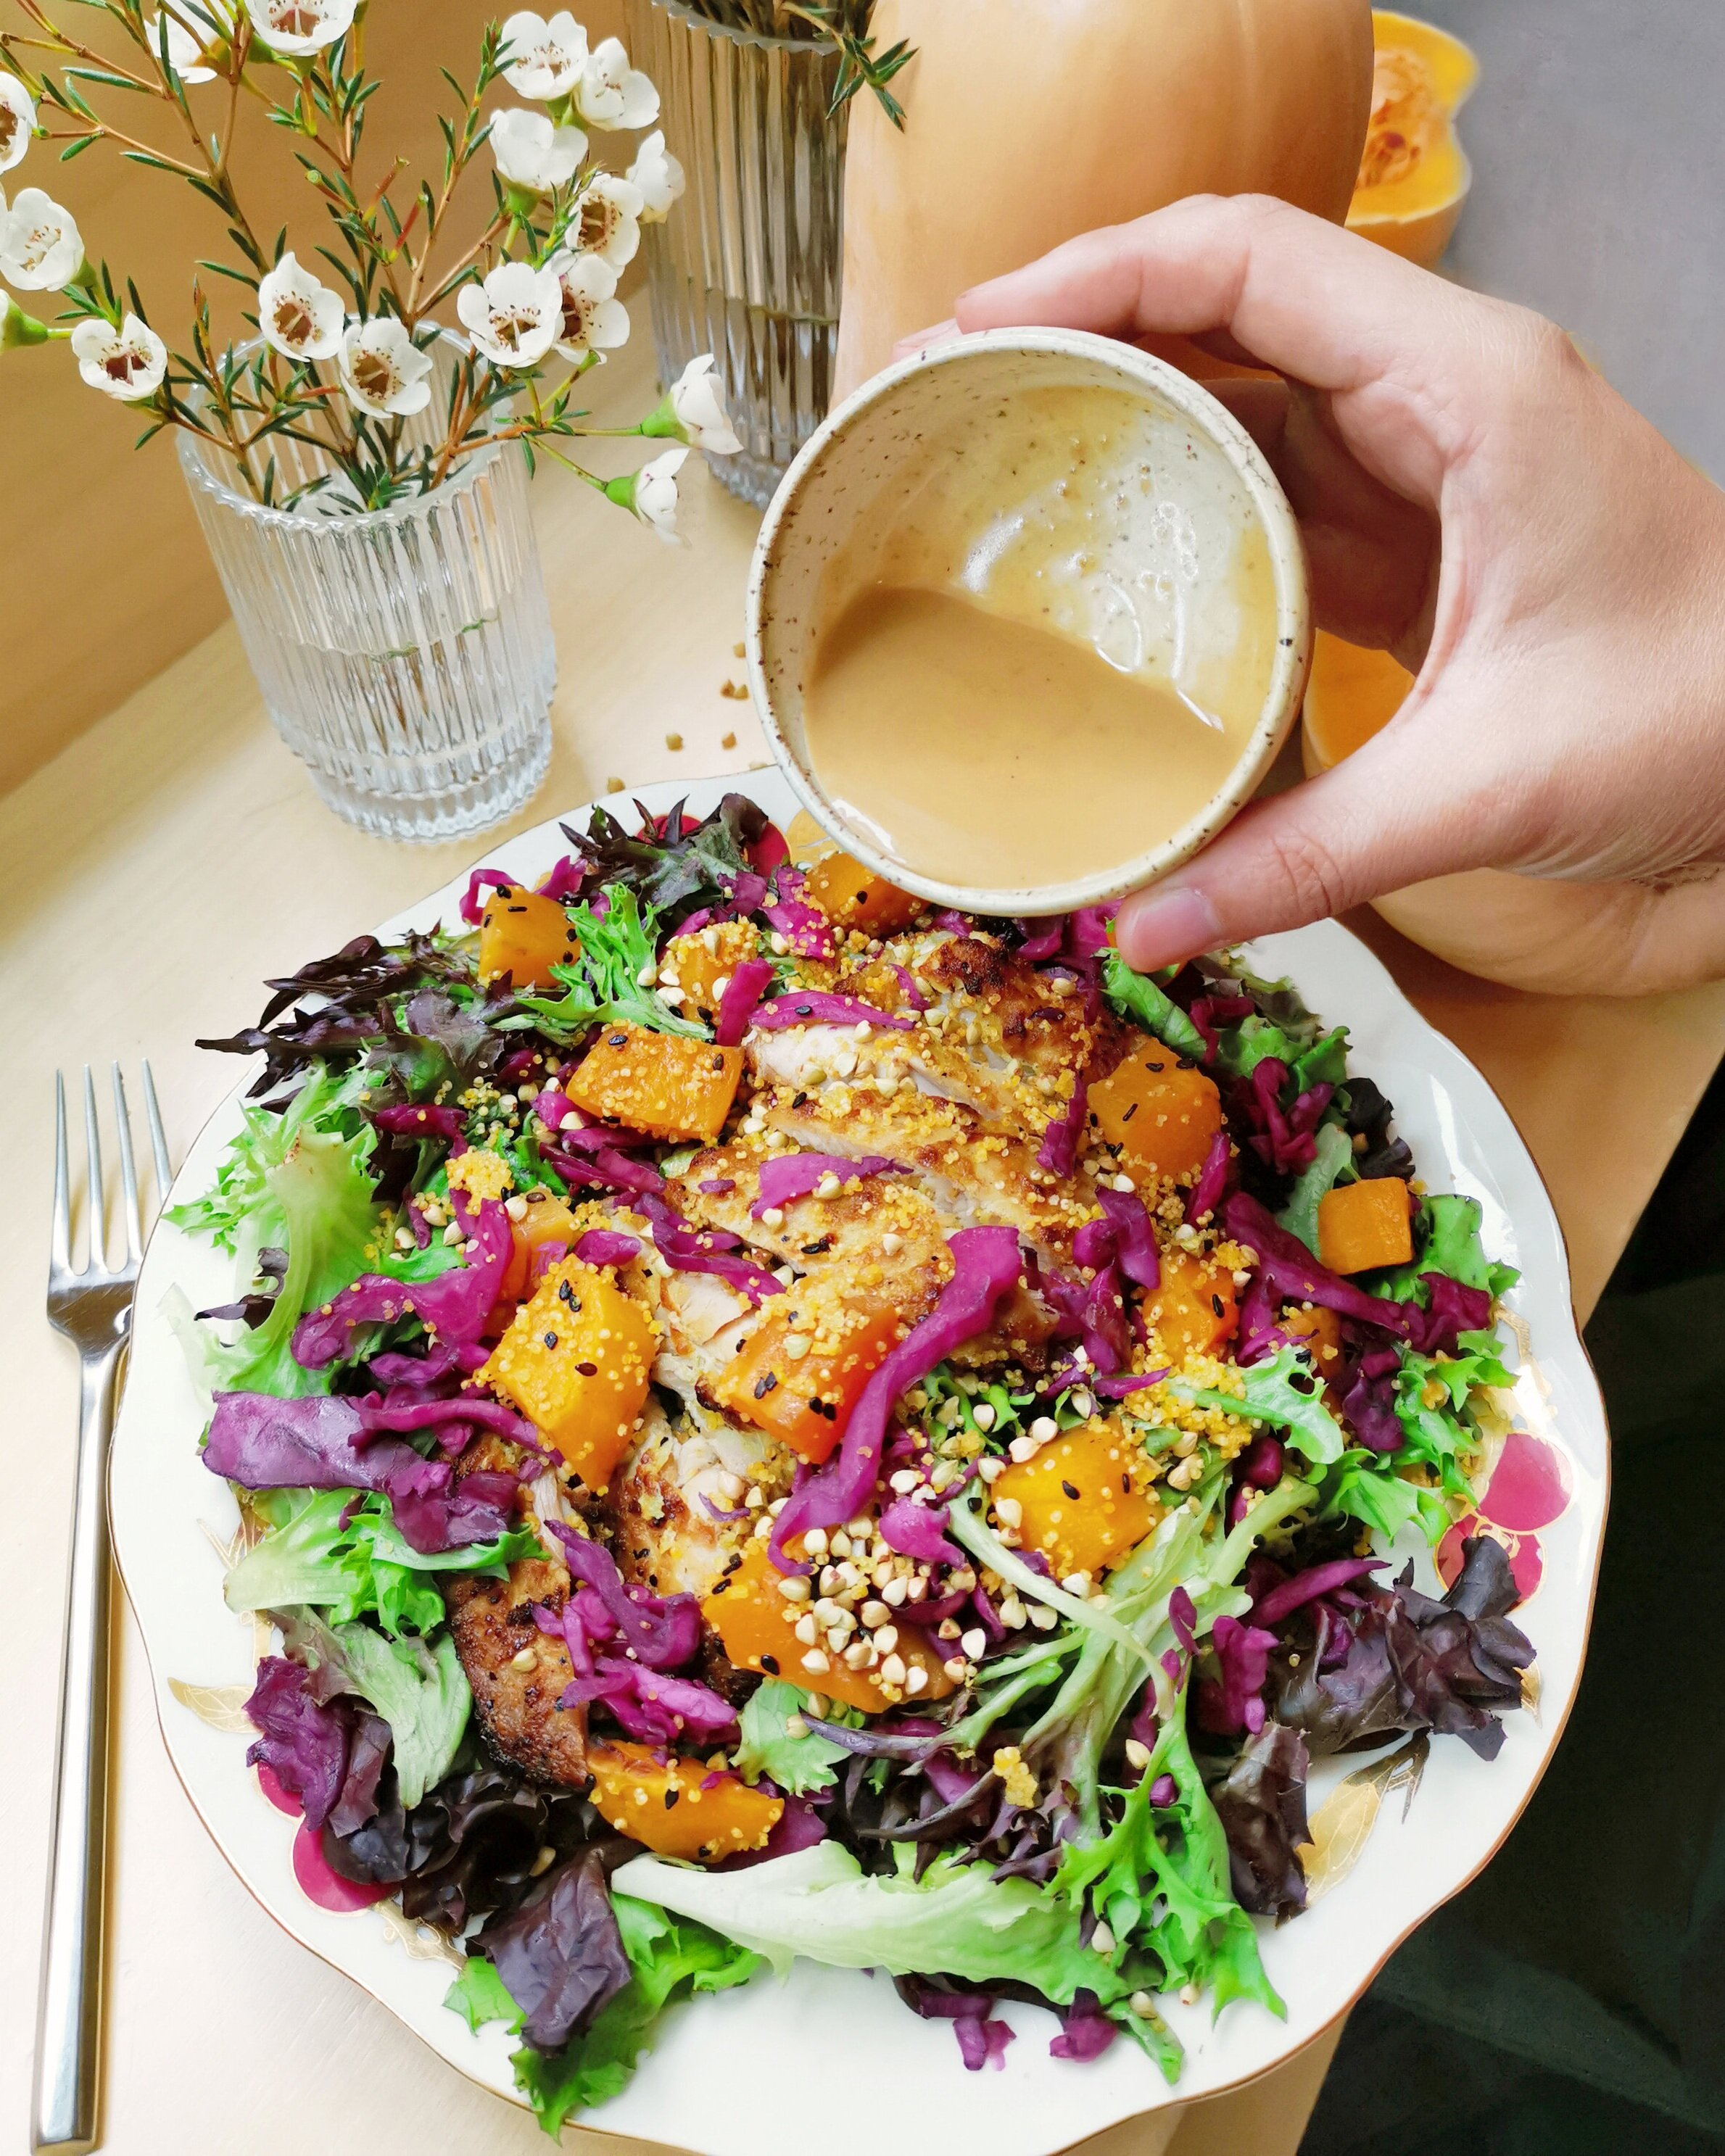 a flavor symphony  Sweet, tangy, and filled with crunch, the Squash & Grain Salad sings a hearty song full of flavor, texture, and color. Ginger scallion chicken, tangy pickled cabbage, and rich roasted squash are balanced with a delicate base of young lettuce.